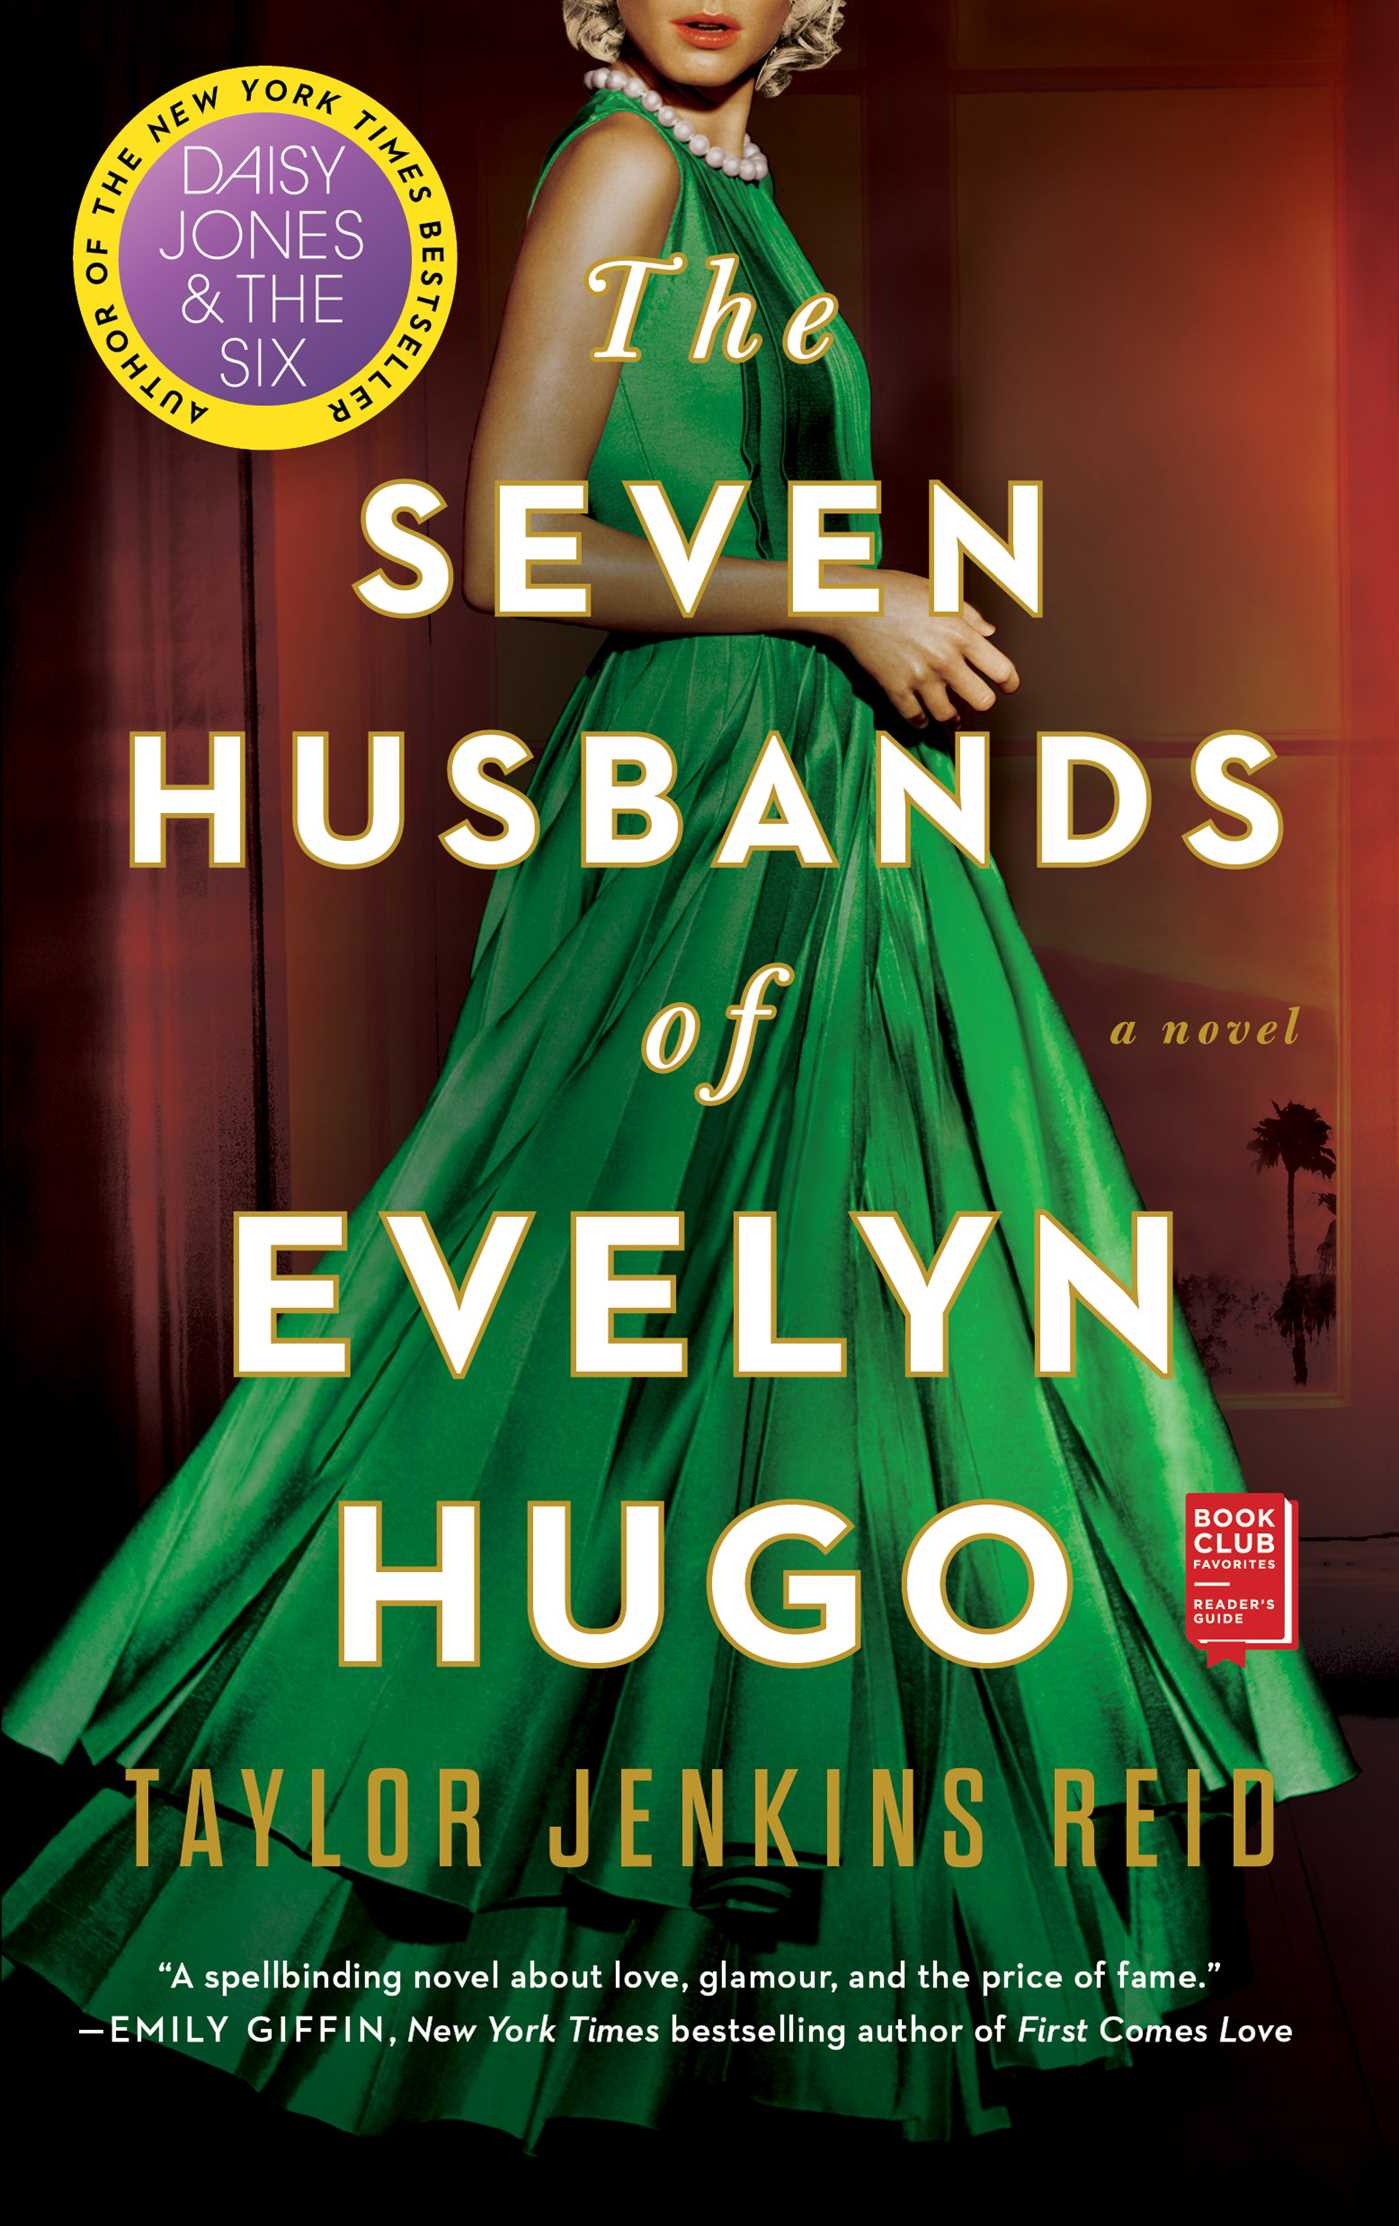 The Seven Husbands of Evelyn Hugo // Taylor Jenkins Reid